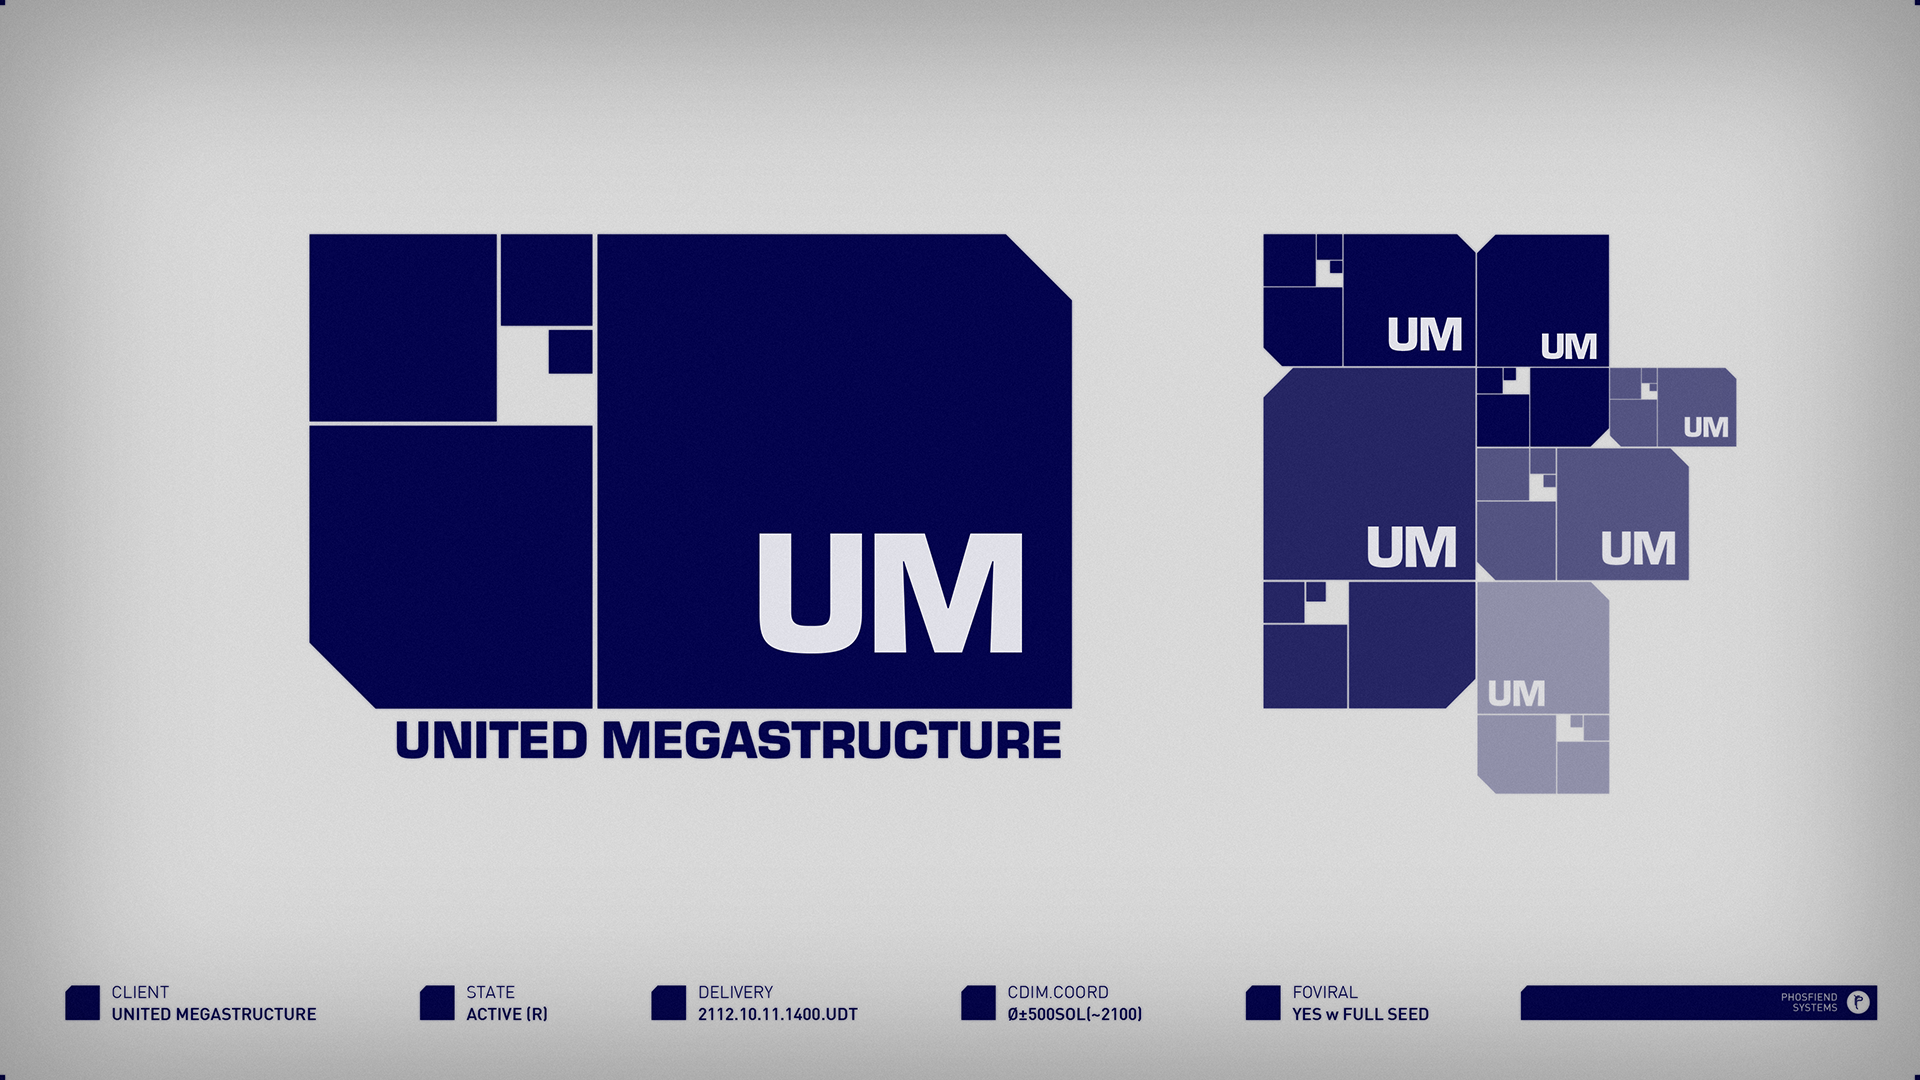 United Megastructure | circa 2112